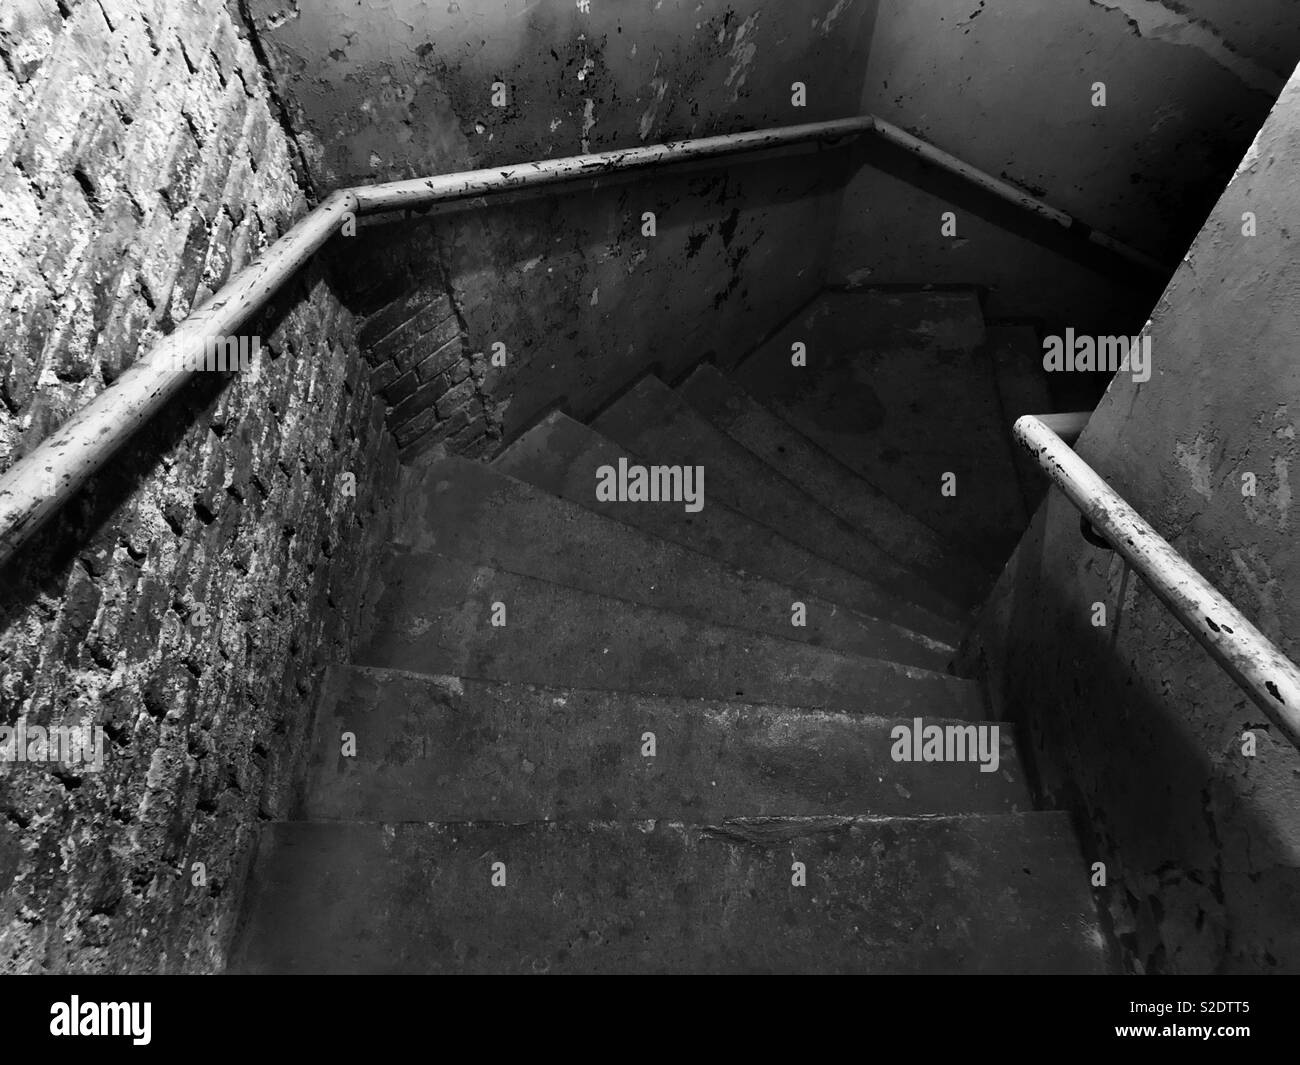 Stairs to the basement of an old building. - Stock Image